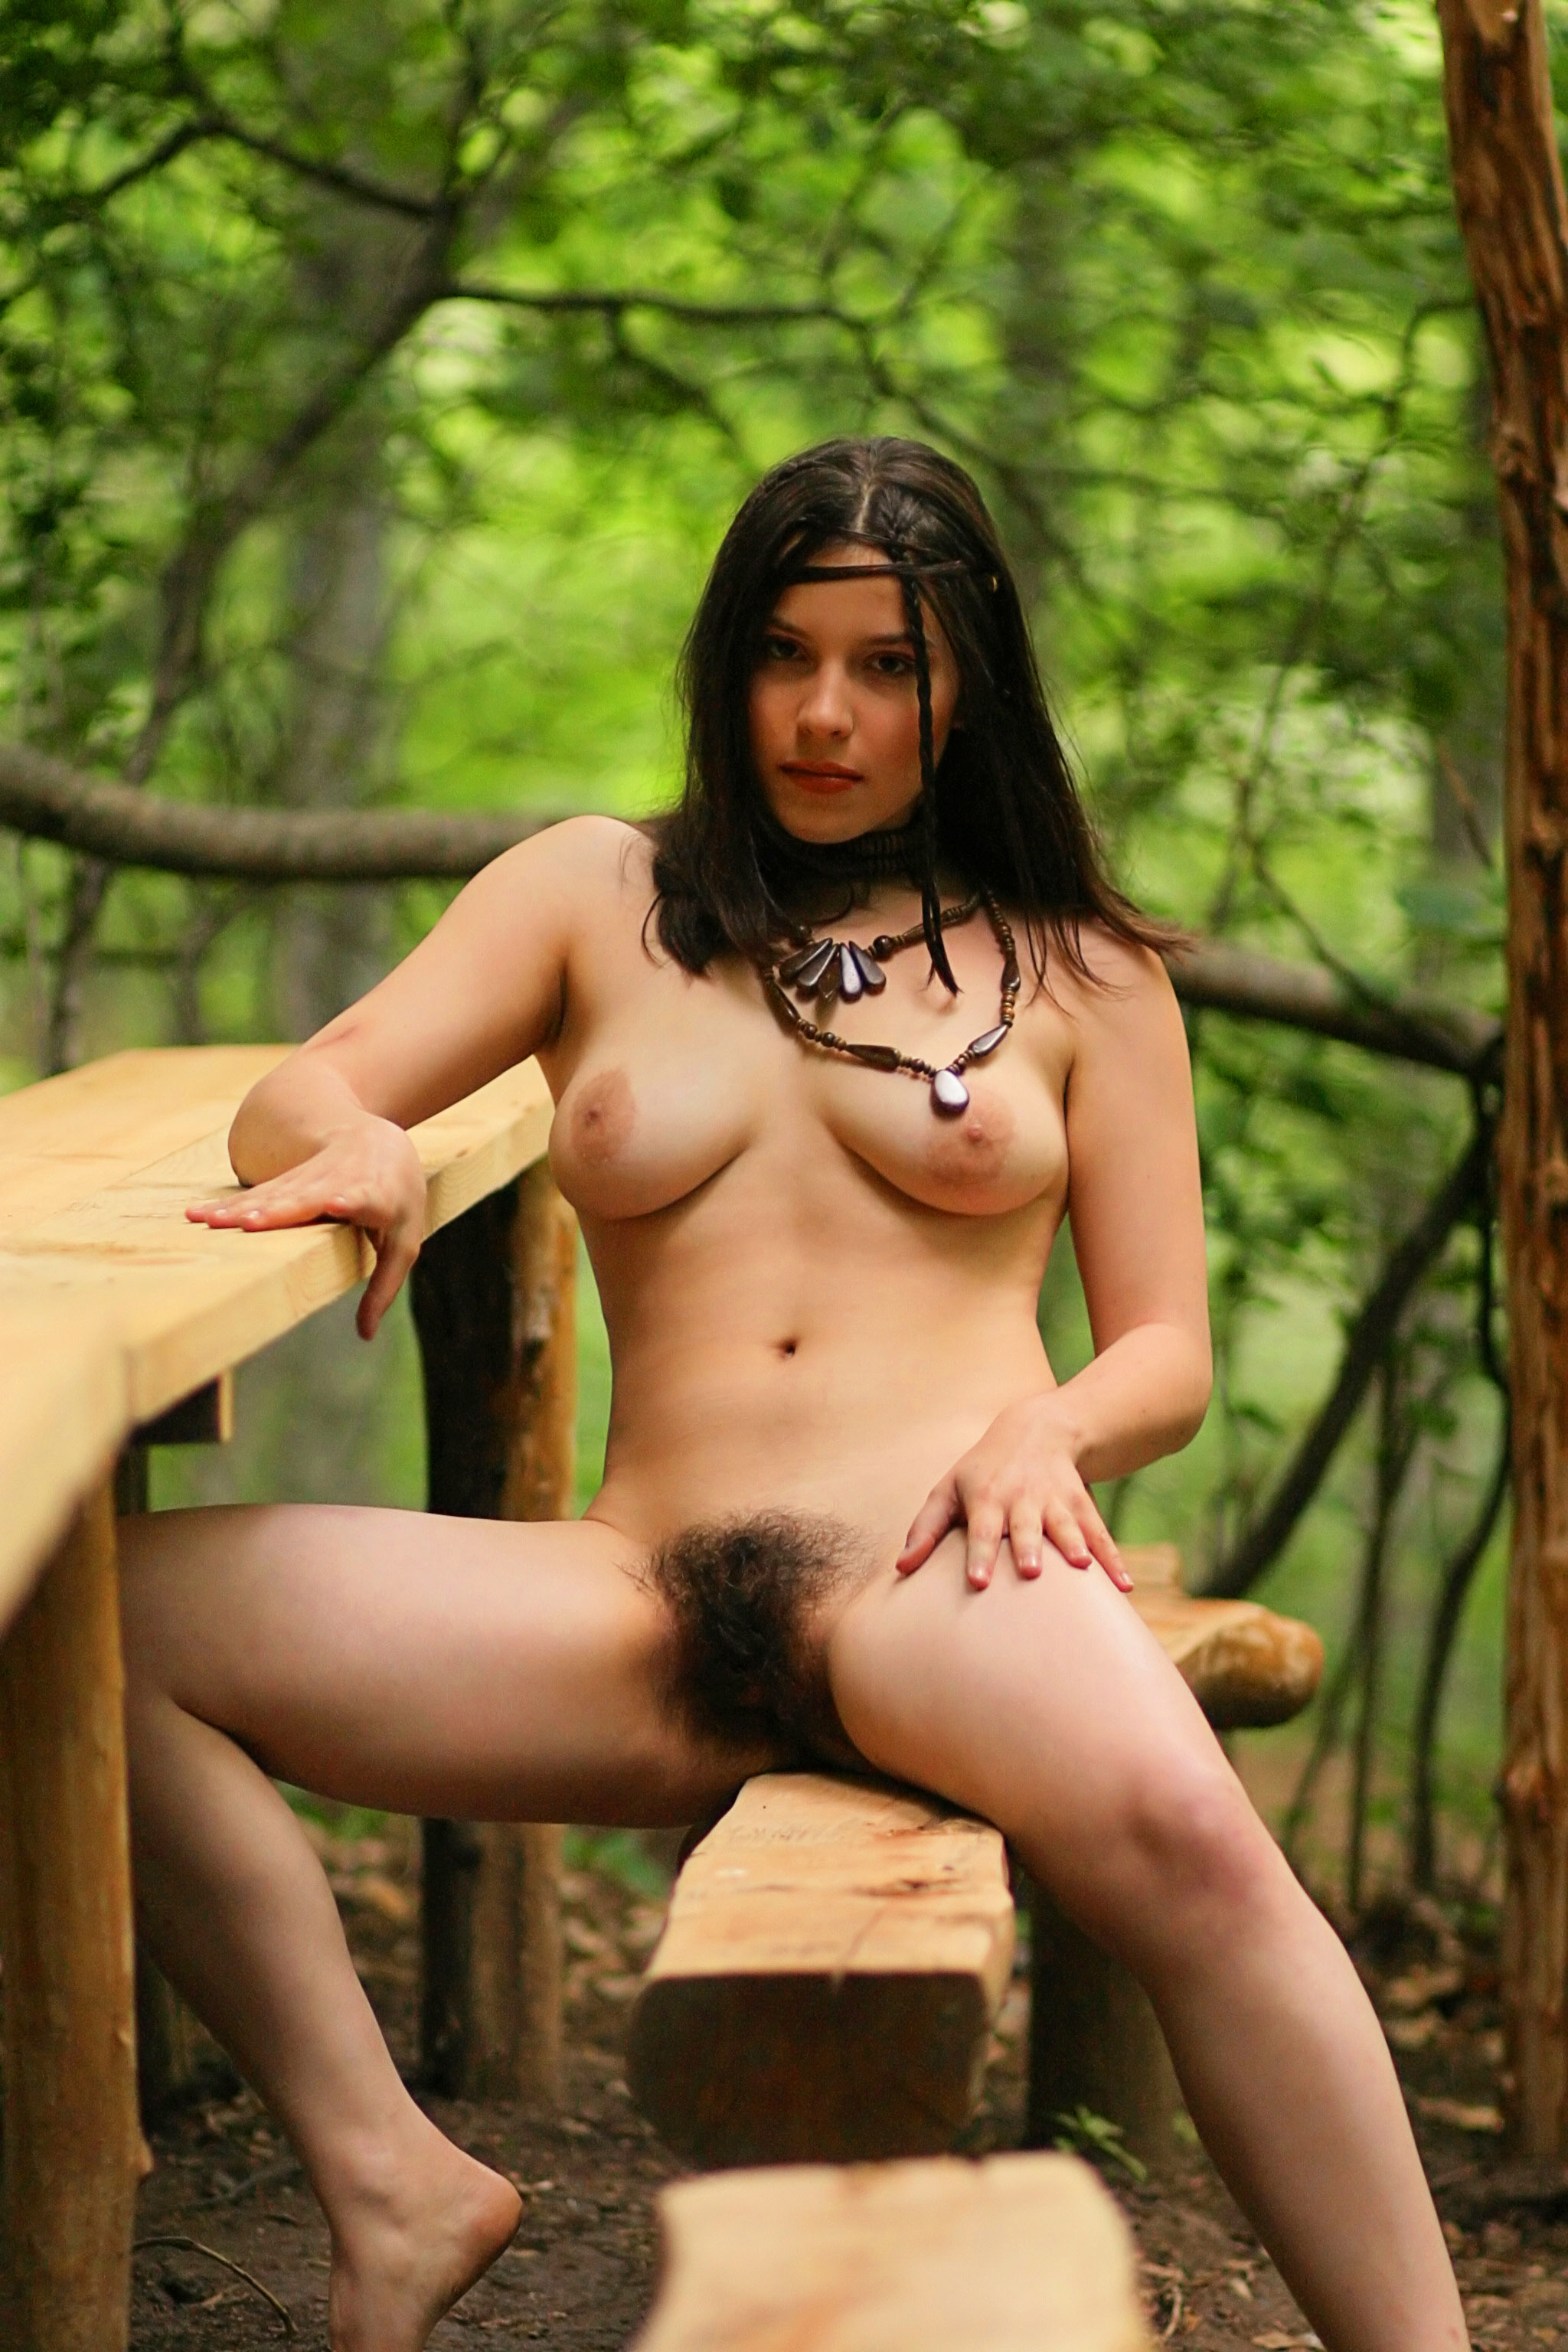 Fully nude naga girls adult sensual angel